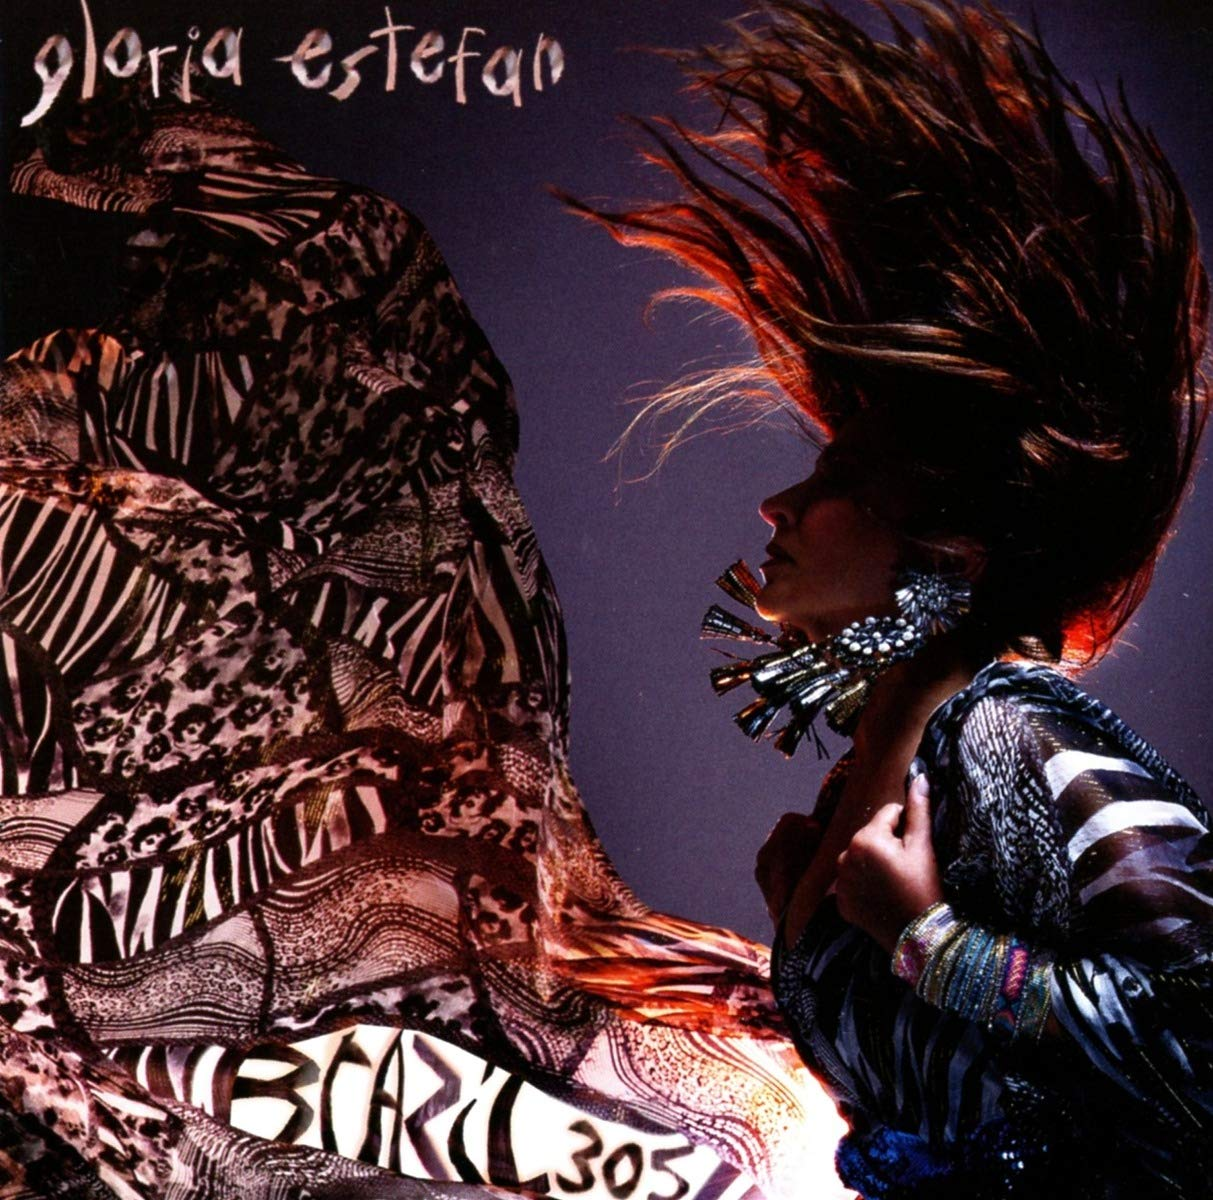 Gloria Estefan - Brazil305 [CD] - Urban Vinyl | Records, Headphones, and more.